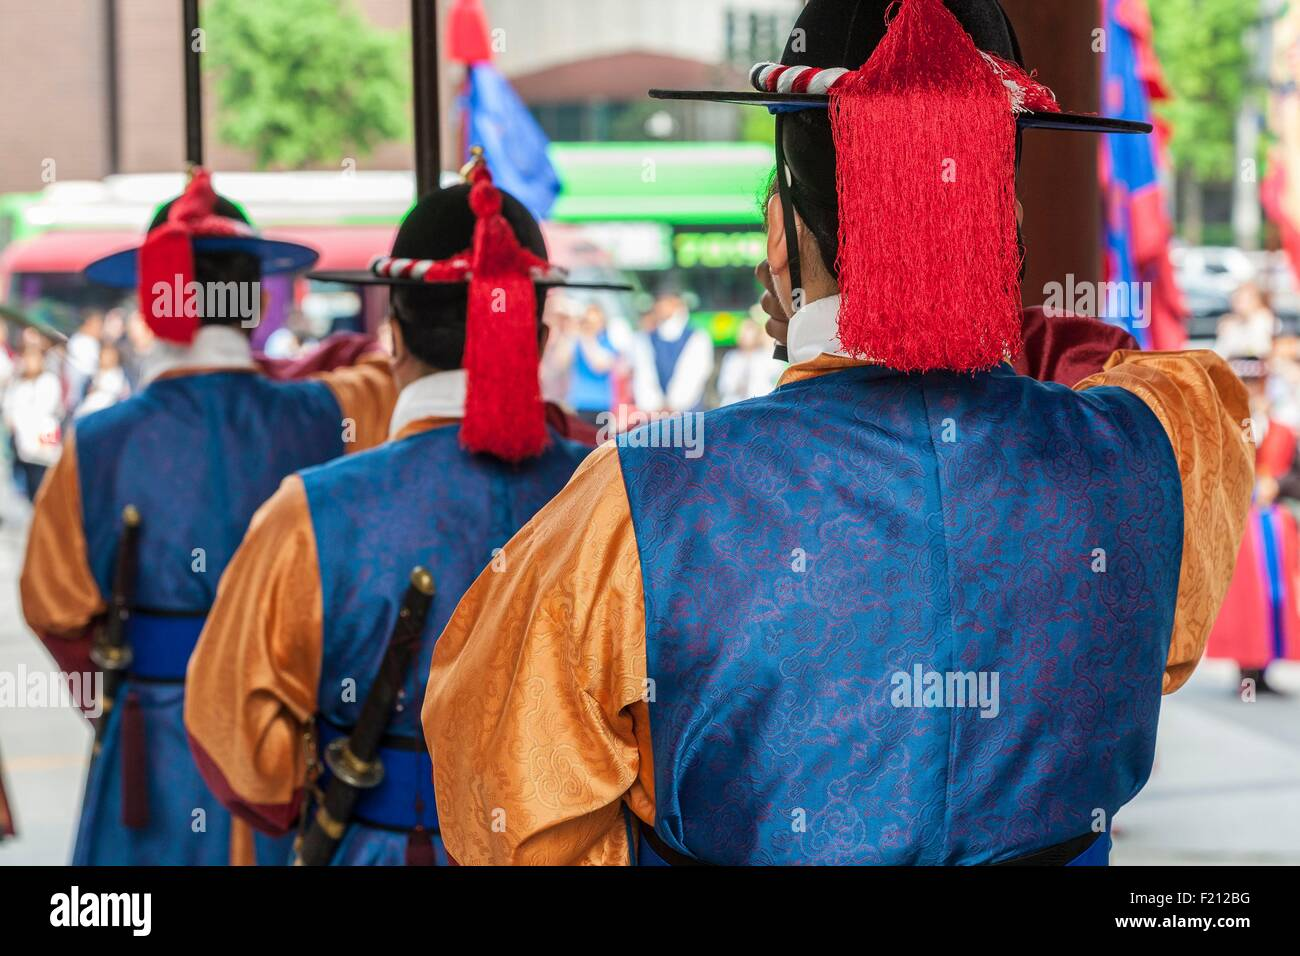 South Korea, Seoul, Deoksugung Palace, the royal palace of the Joseon Dynasty, Daehanmun door, changing of the guard - Stock Image